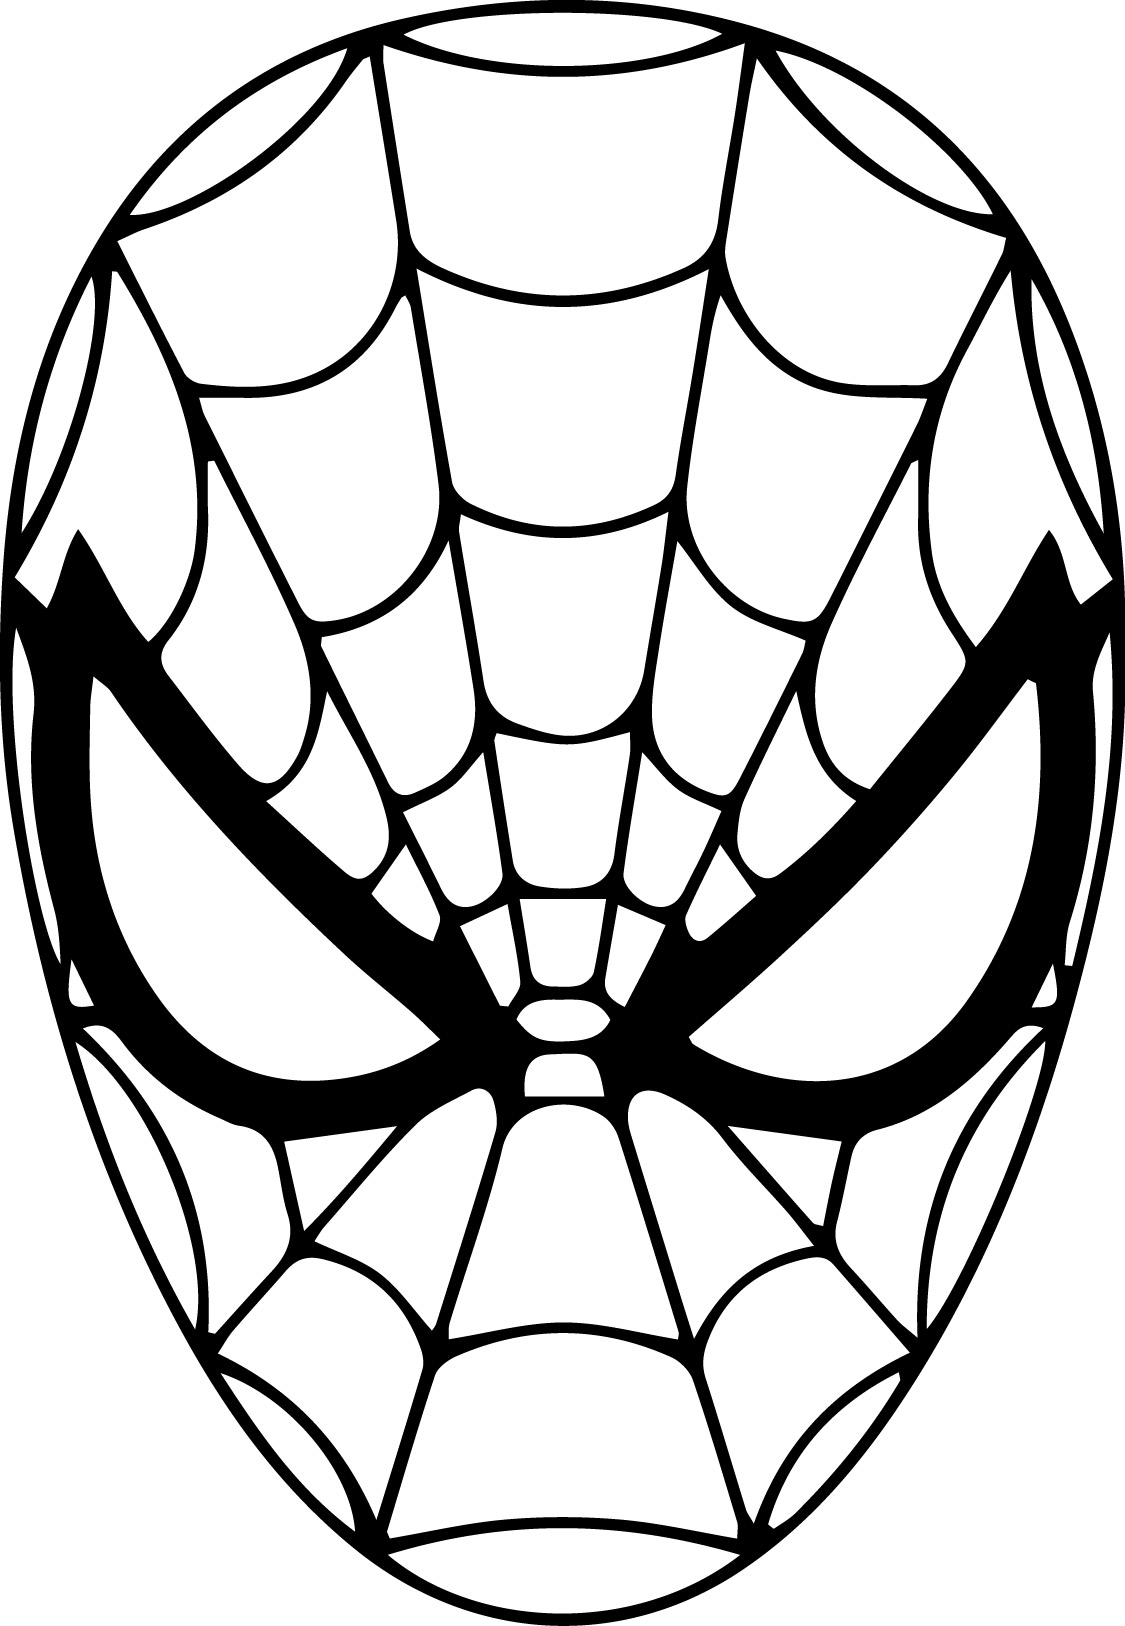 spiderman outline spiderman outline drawing at getdrawings free download spiderman outline 1 3